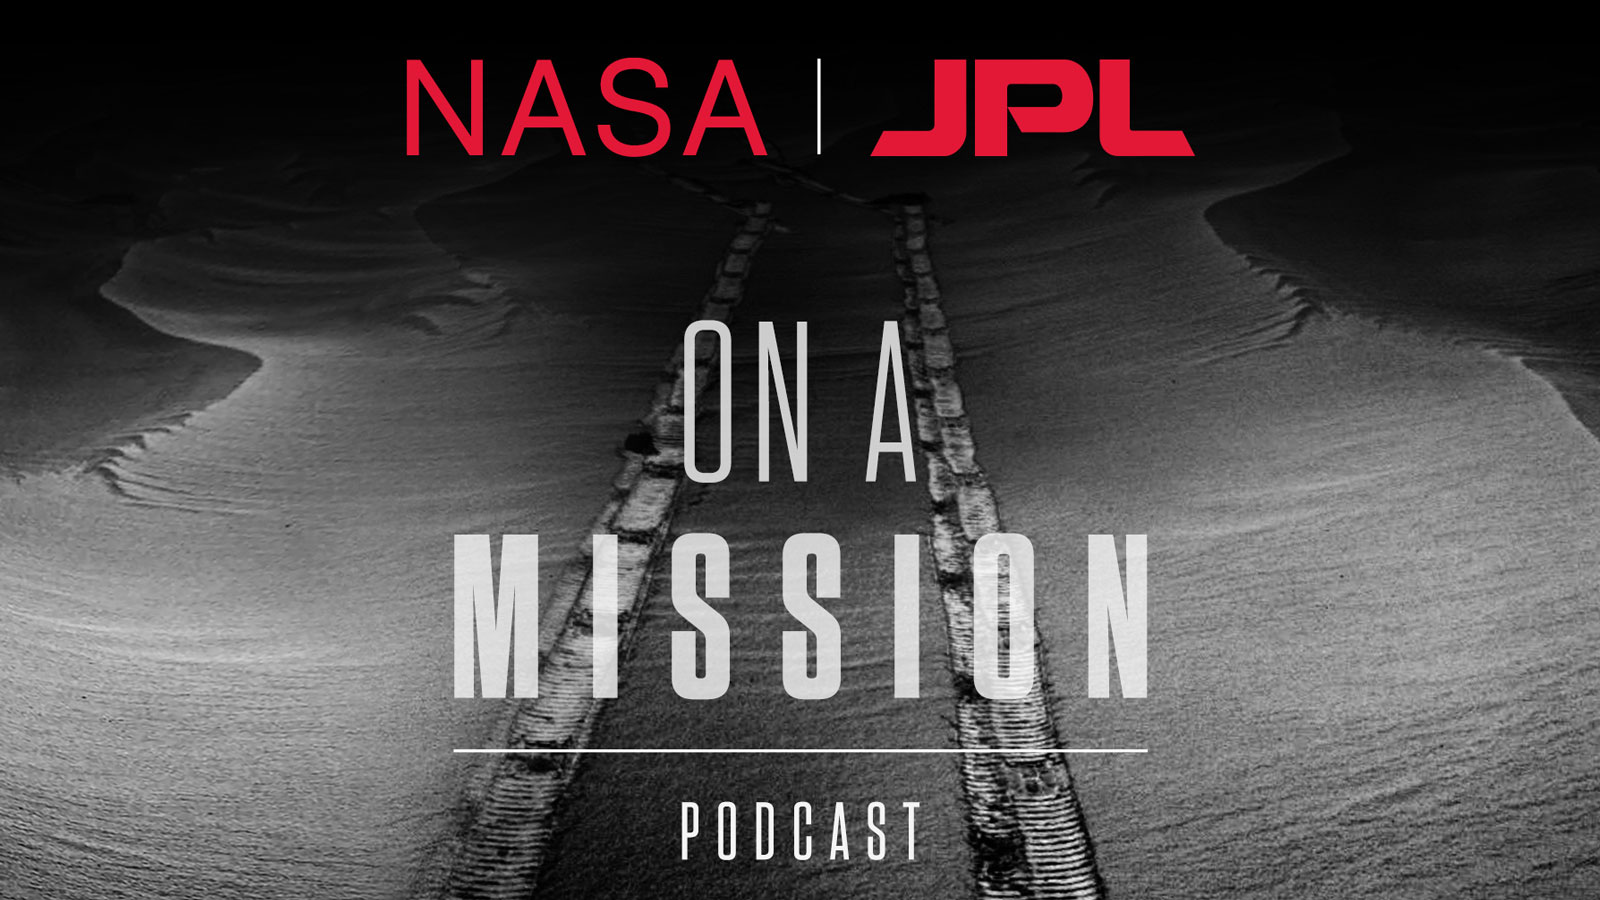 A new podcast, On a Mission